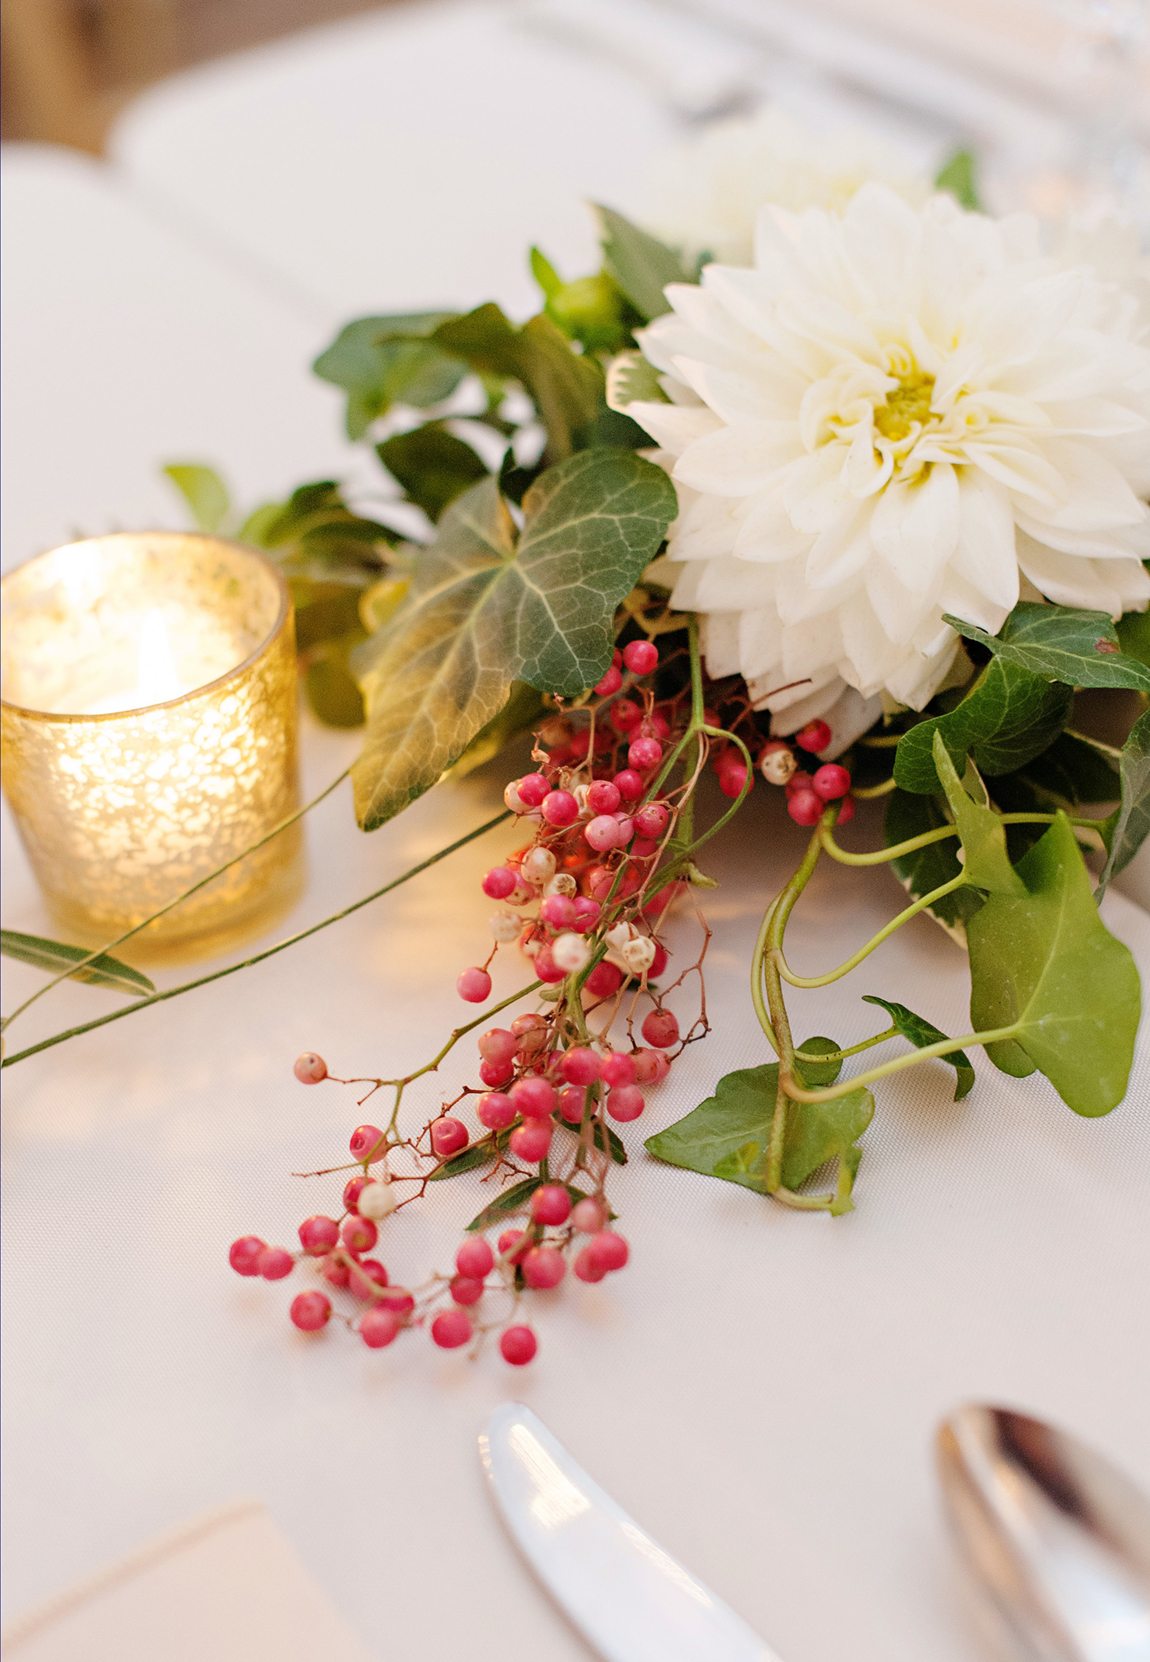 Flower fresh green garland with pink pepper berry accents and fall dahlia flowers on the head table at an outdoor park wedding.